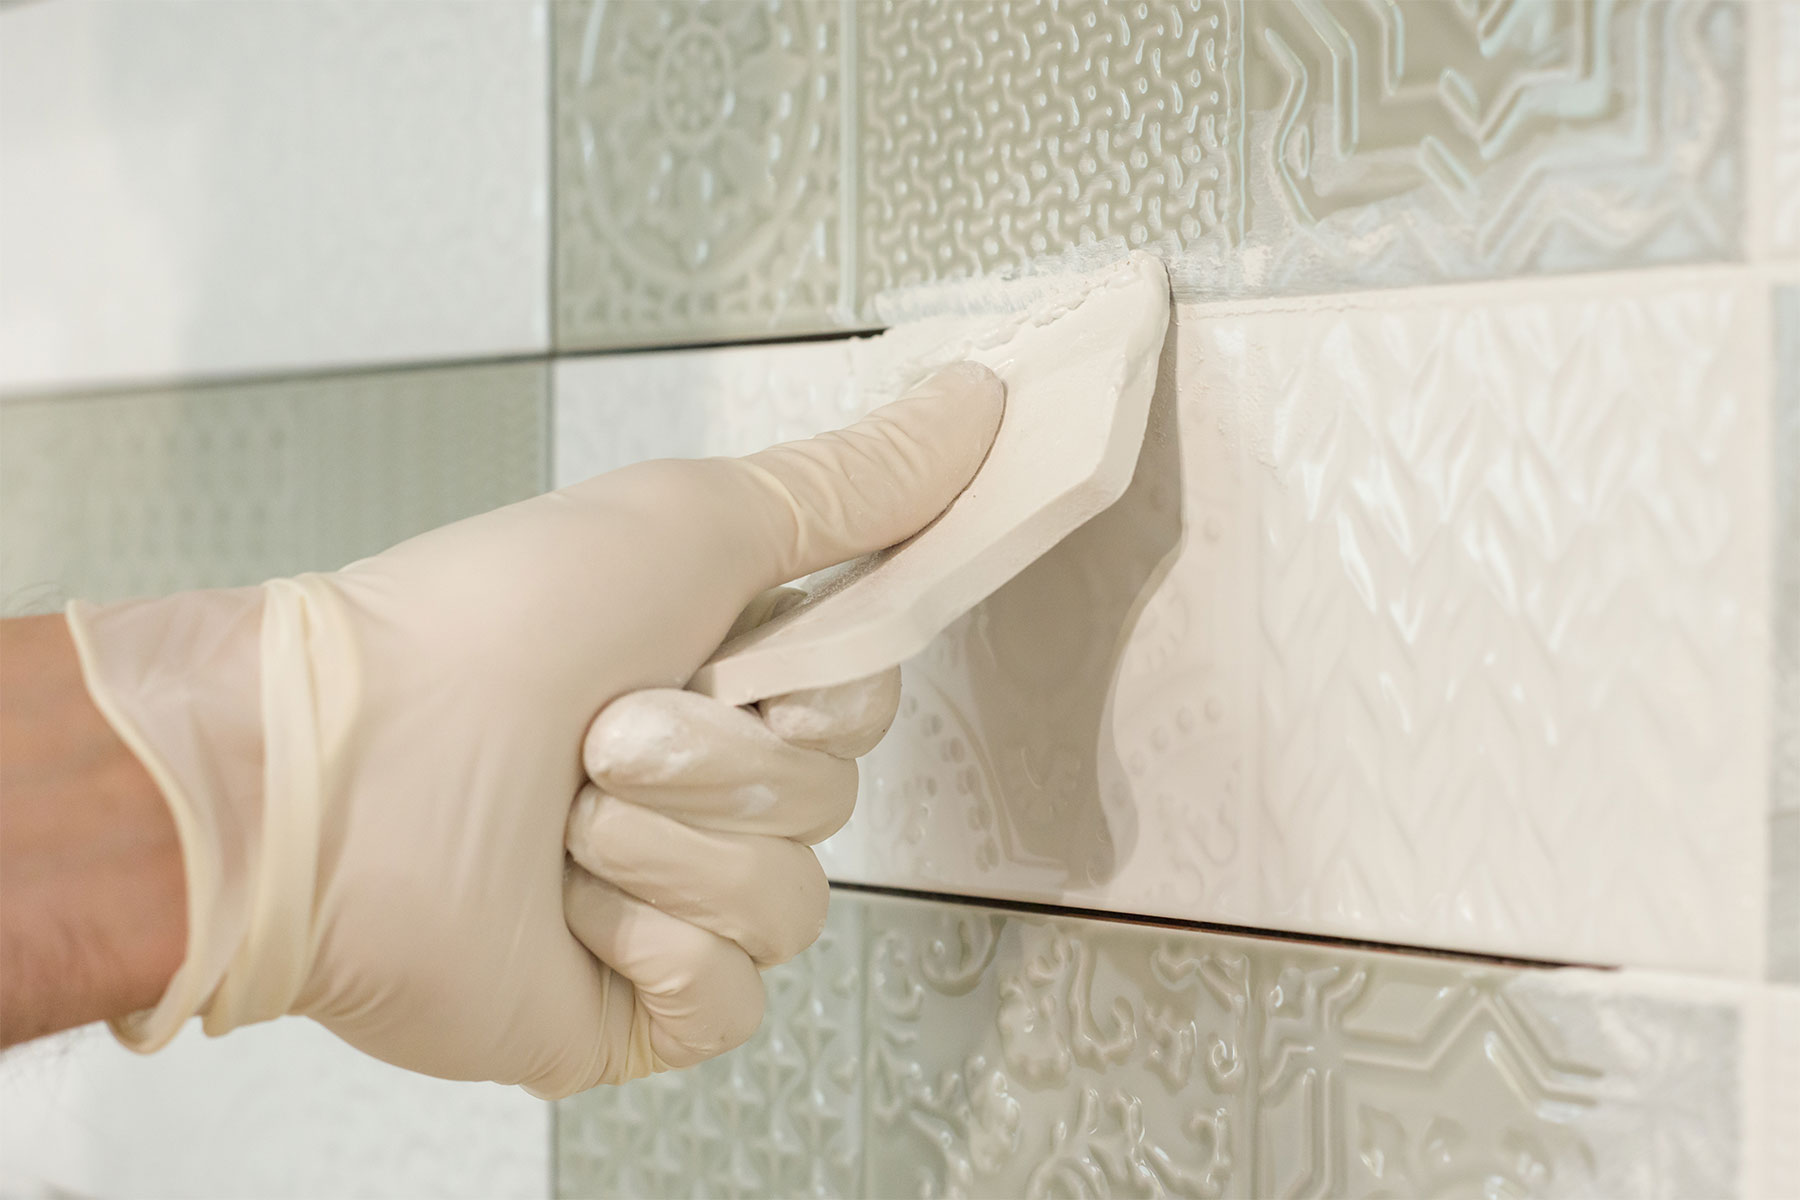 Allow your tile to set for 24 hours before grouting.